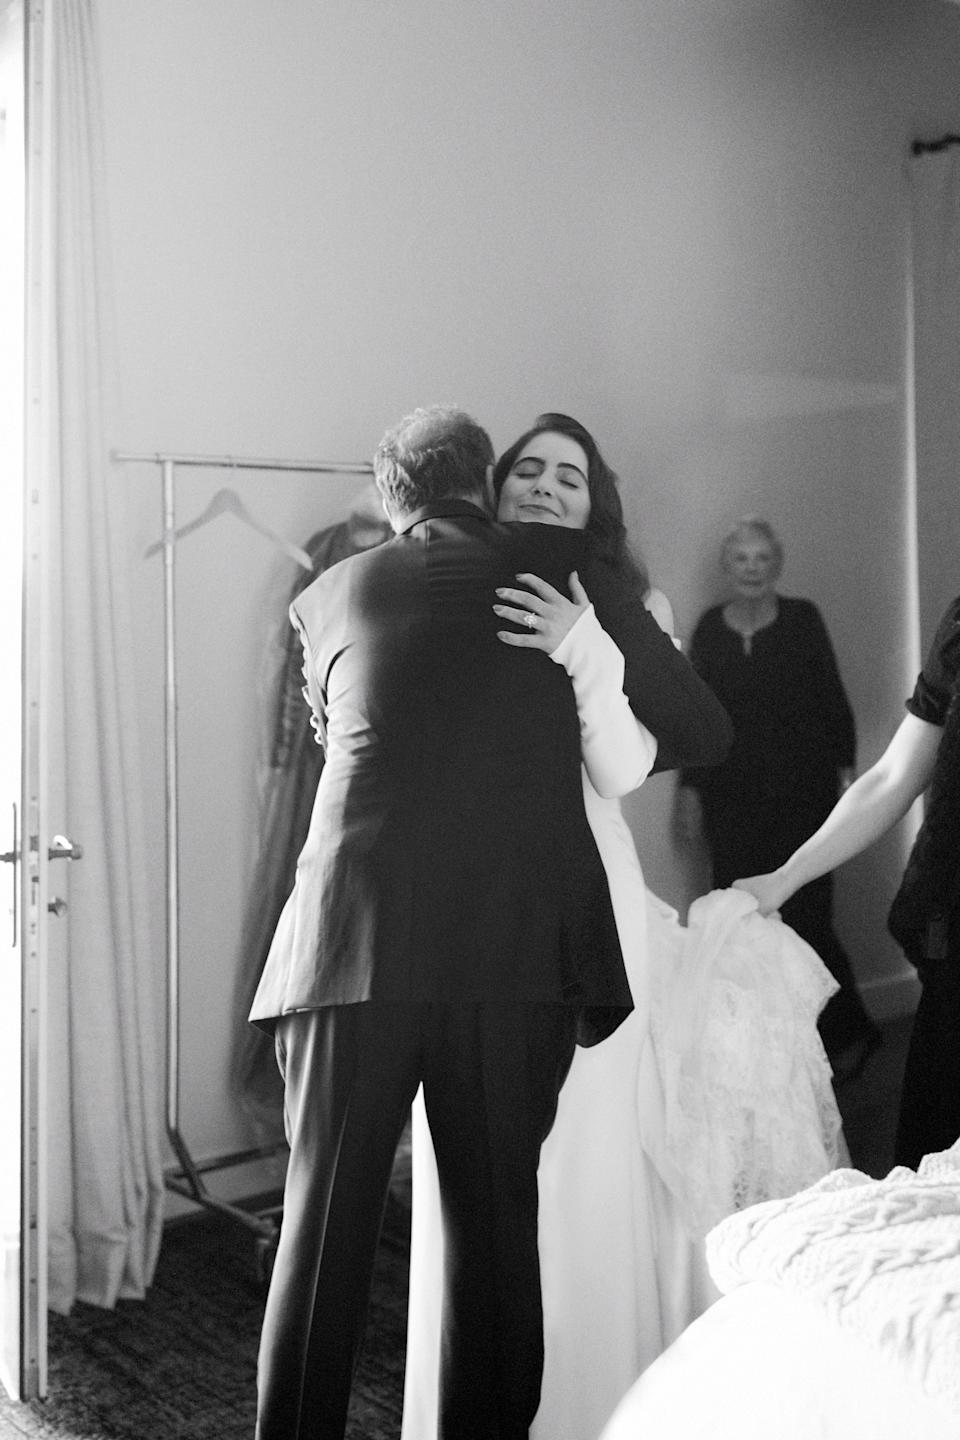 My sweet father and I hugging before we walked down the aisle. My dad and I have a special bond and share many similarities. He is my mentor and dearest confidante. No wonder I chose to become a dentist, just like him.